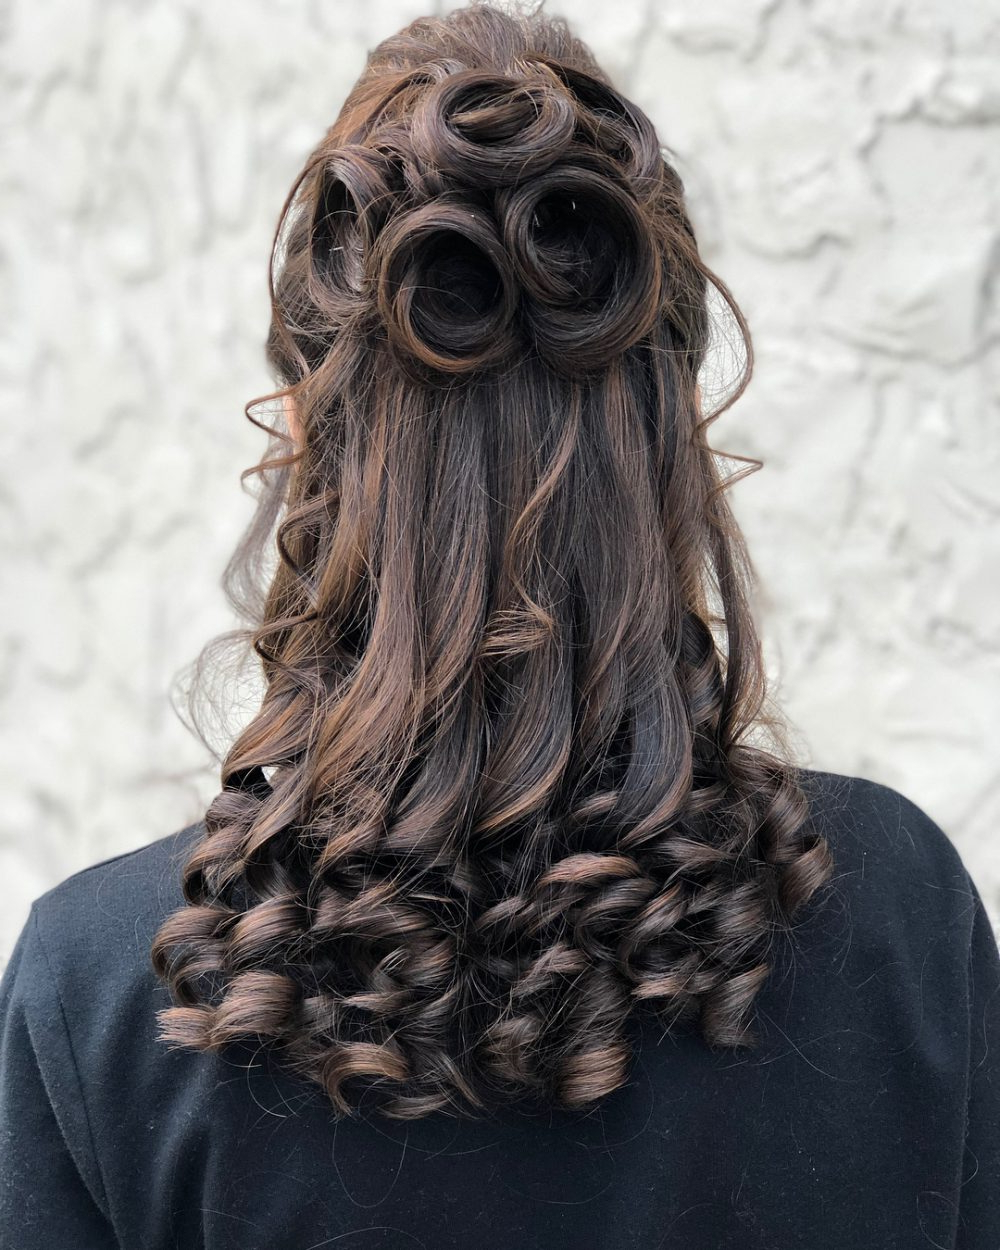 Latest Elegant Curled Prom Hairstyles Regarding 23 Cute Prom Hairstyles For 2019 – Updos, Braids, Half Ups & Down Dos (Gallery 3 of 20)